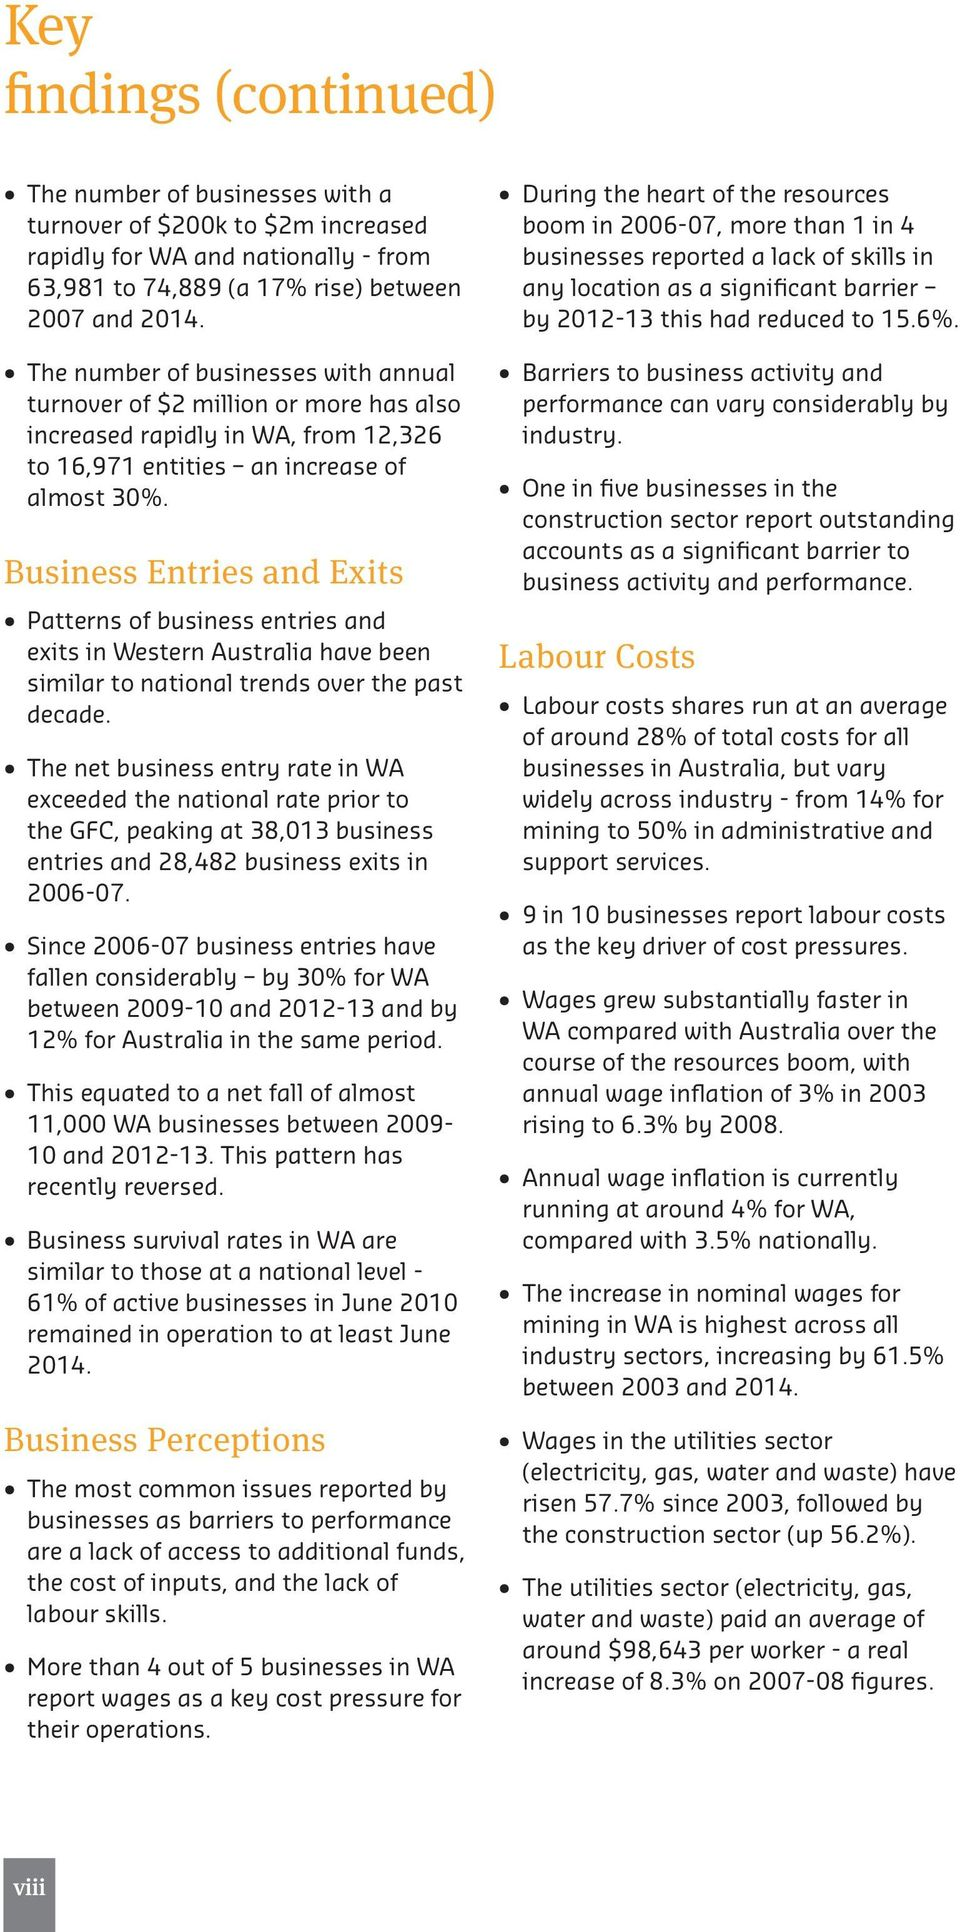 Business Entries and Exits Patterns of business entries and exits in Western Australia have been similar to national trends over the past decade.